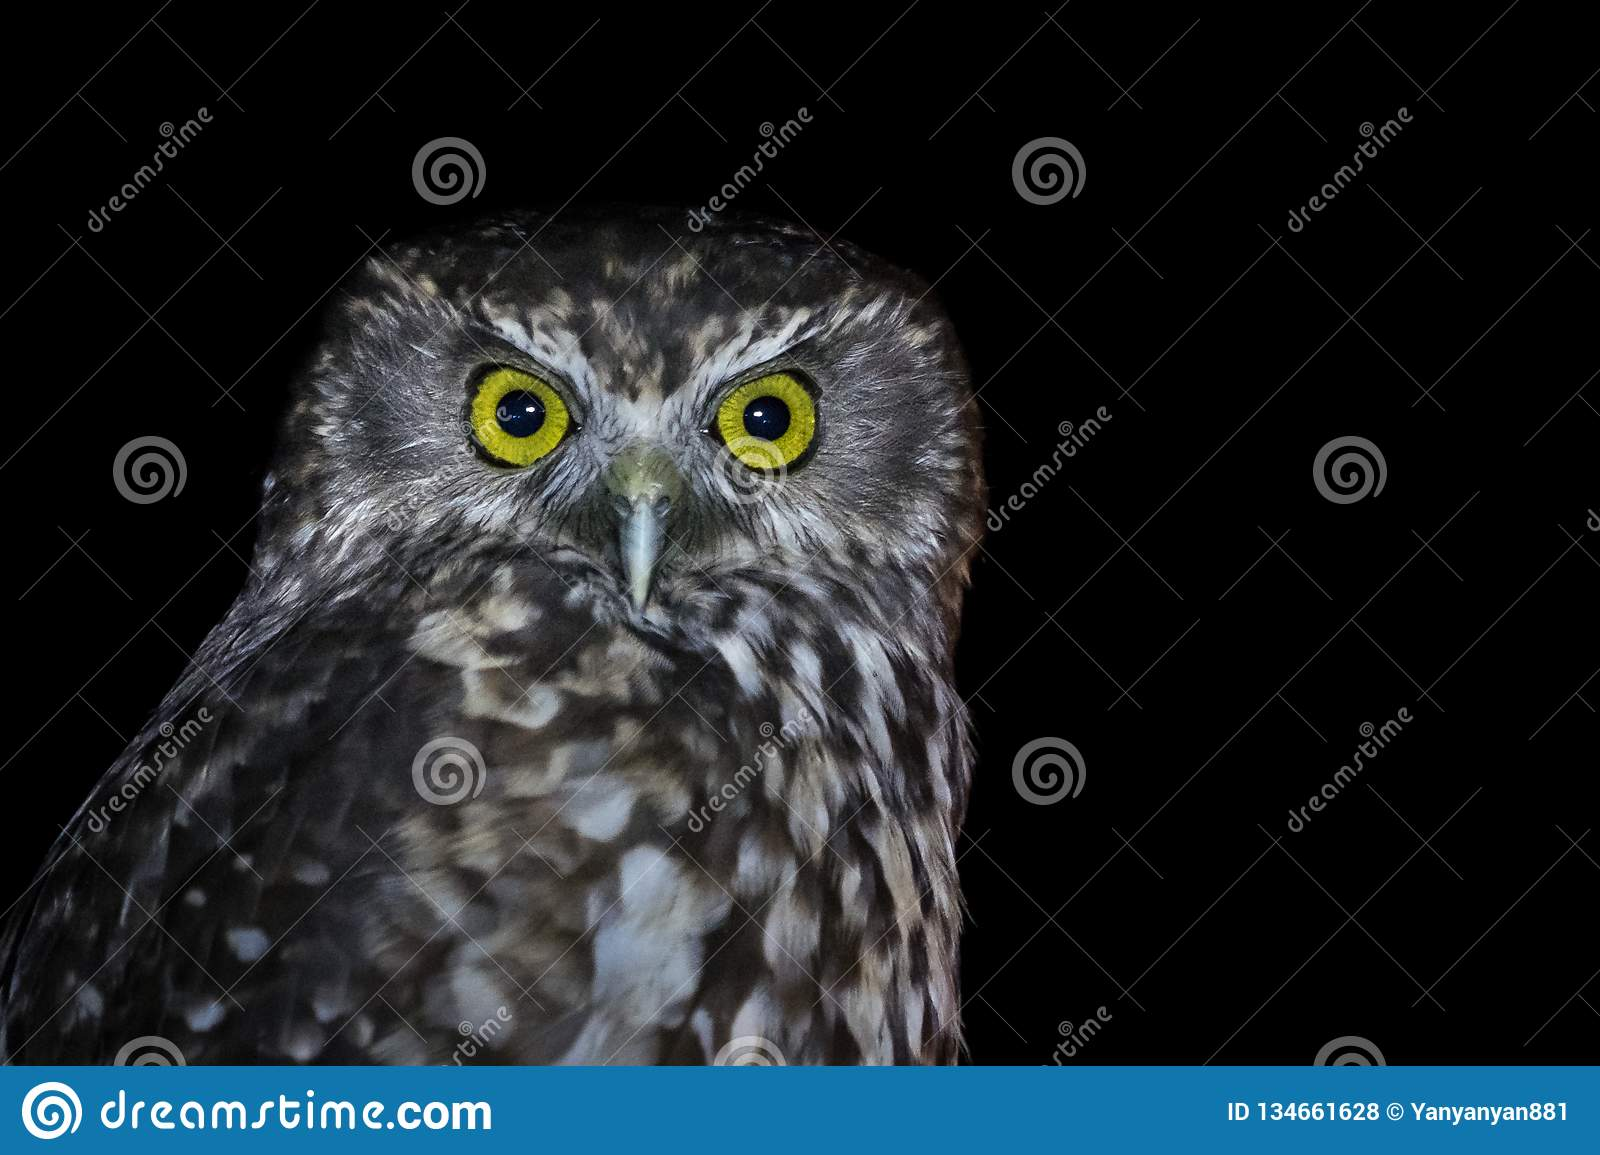 Isolated intense Owl staring into the camera